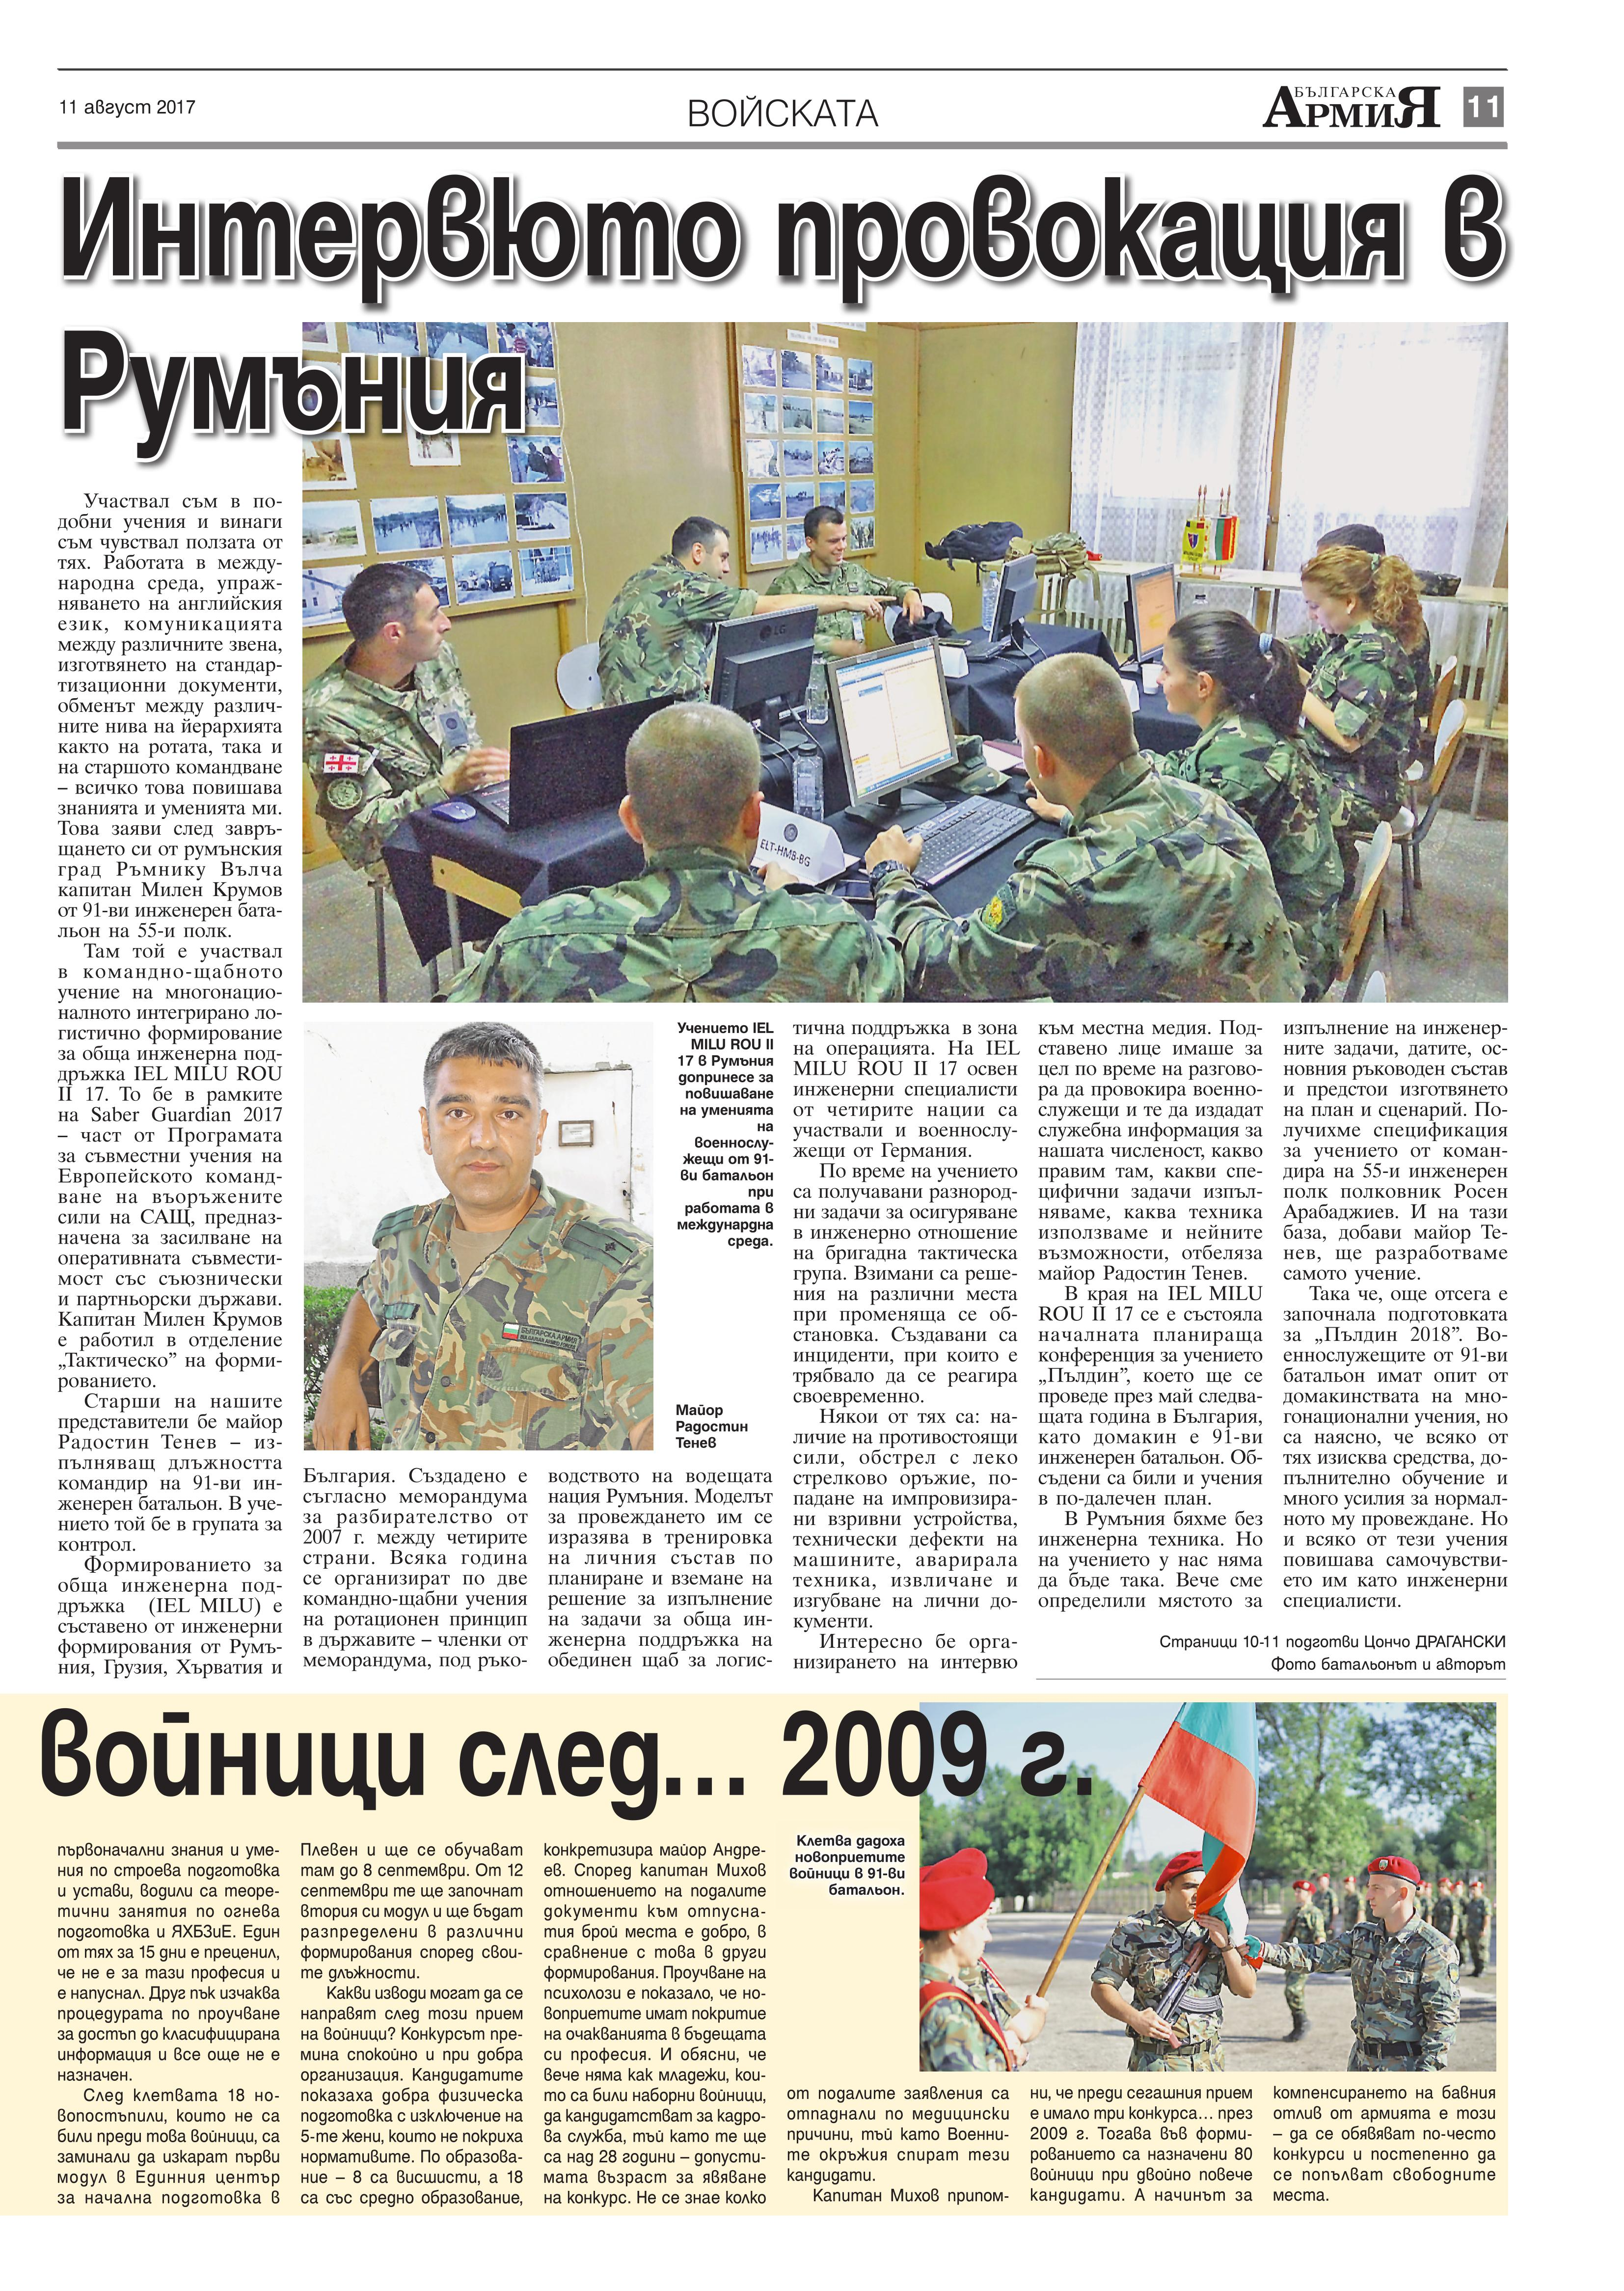 http://armymedia.bg/wp-content/uploads/2015/06/11.page1_-28.jpg